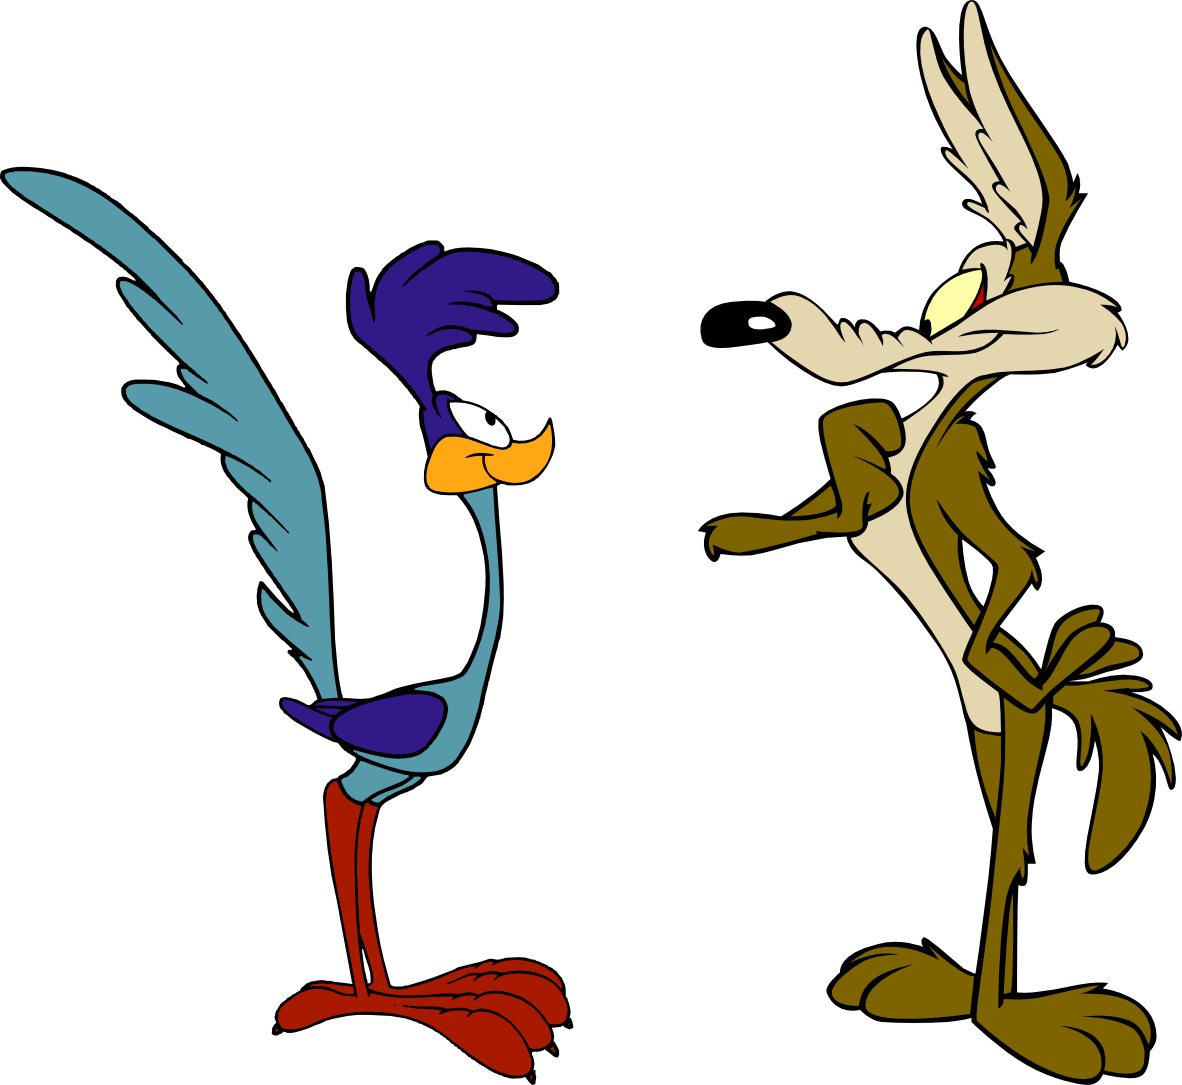 1182x1085 The Adventures Of Wile E Coyote And The Road Runner